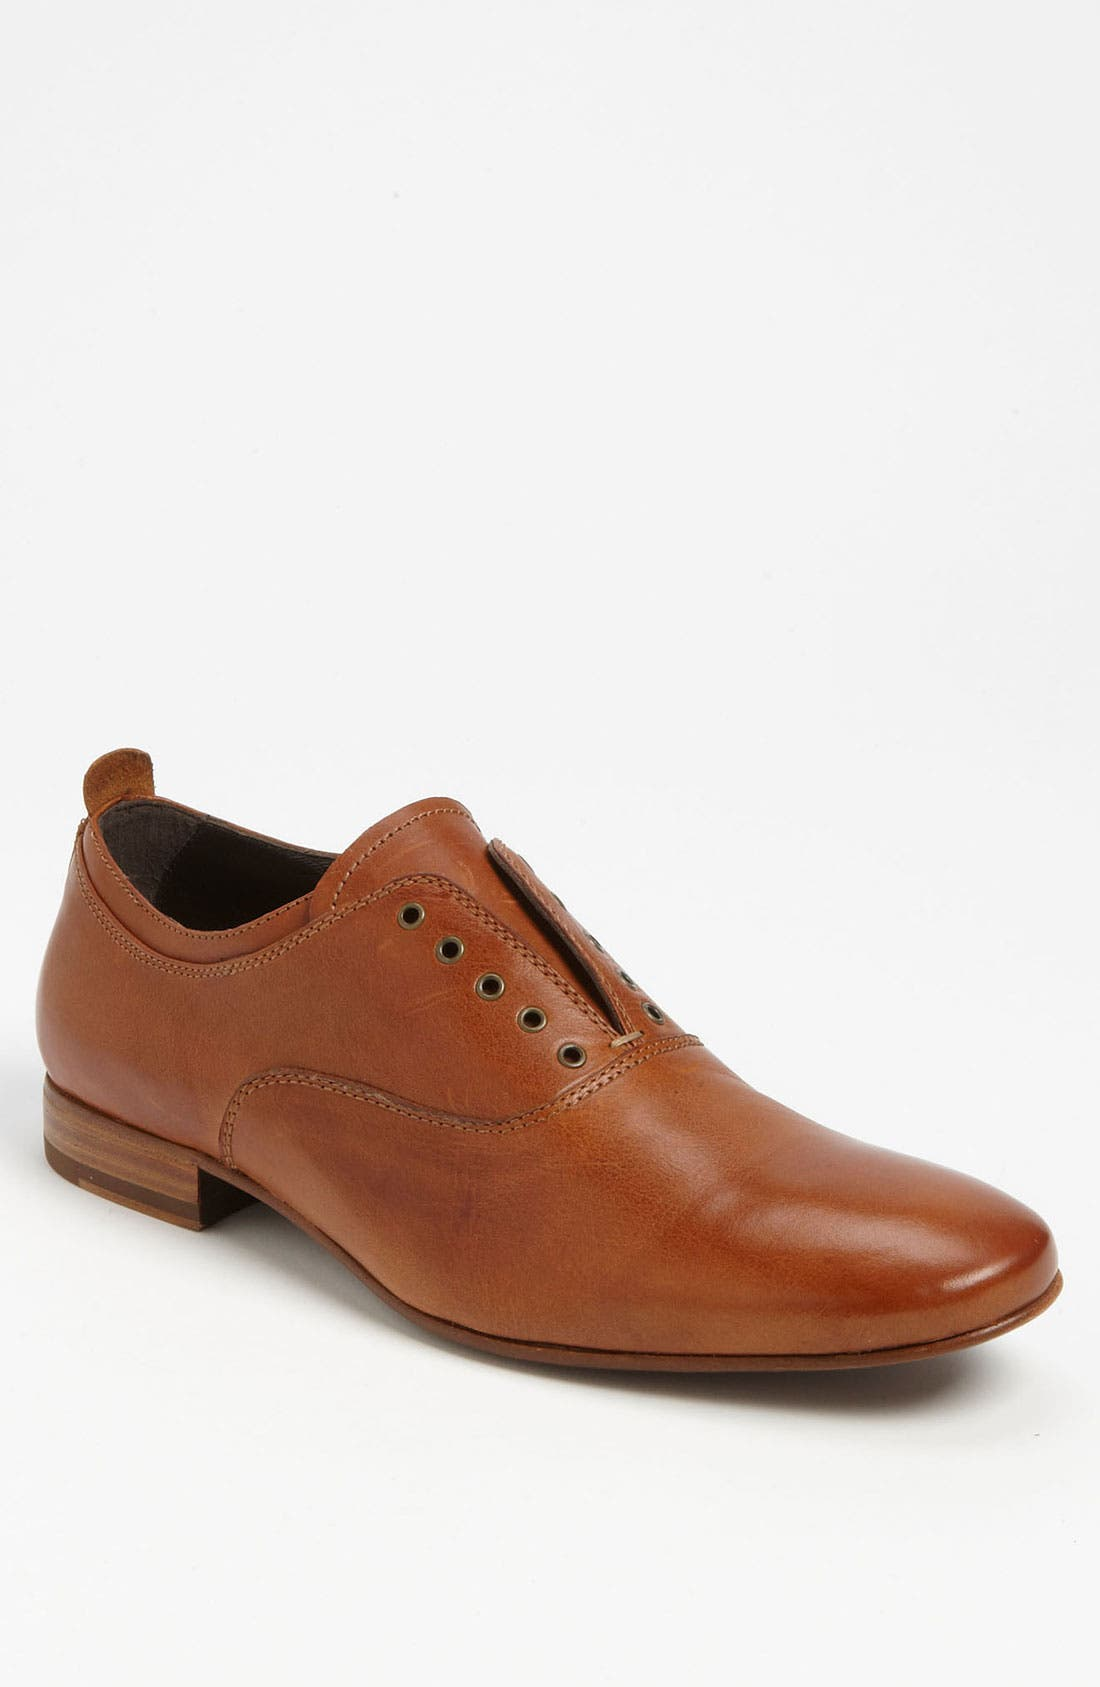 Alternate Image 1 Selected - Maison Forte 'Van de Rohe' Laceless Oxford